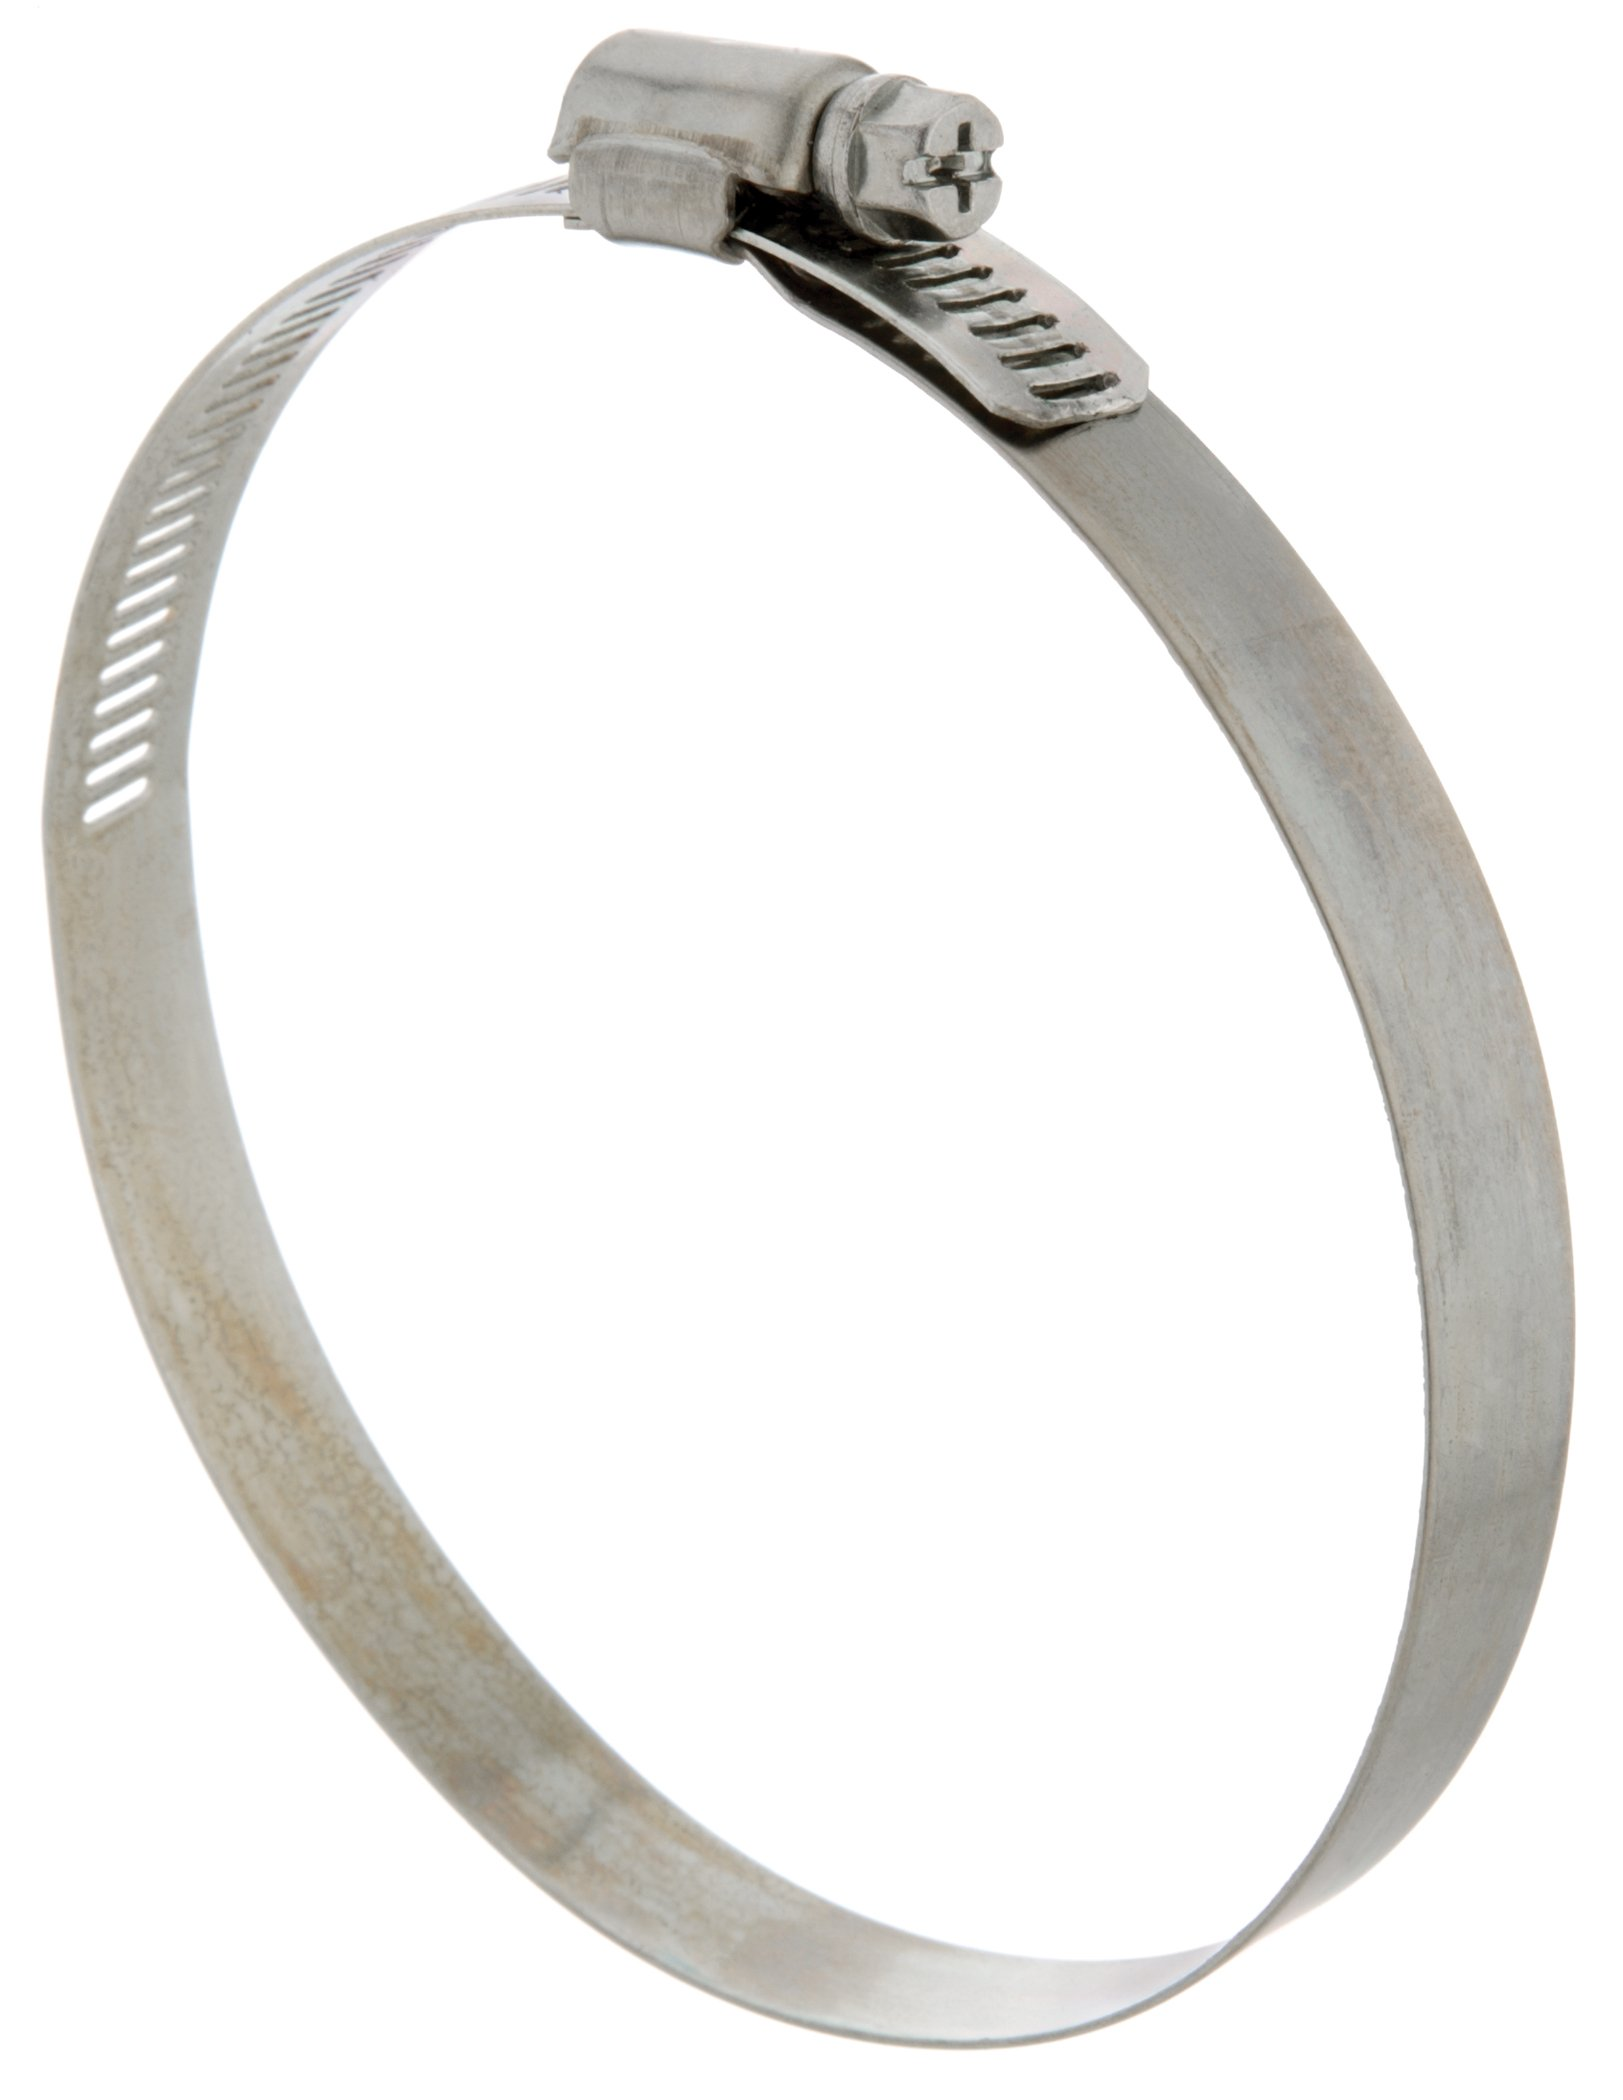 Woodstock W1025 2-Inch Hose Clamp